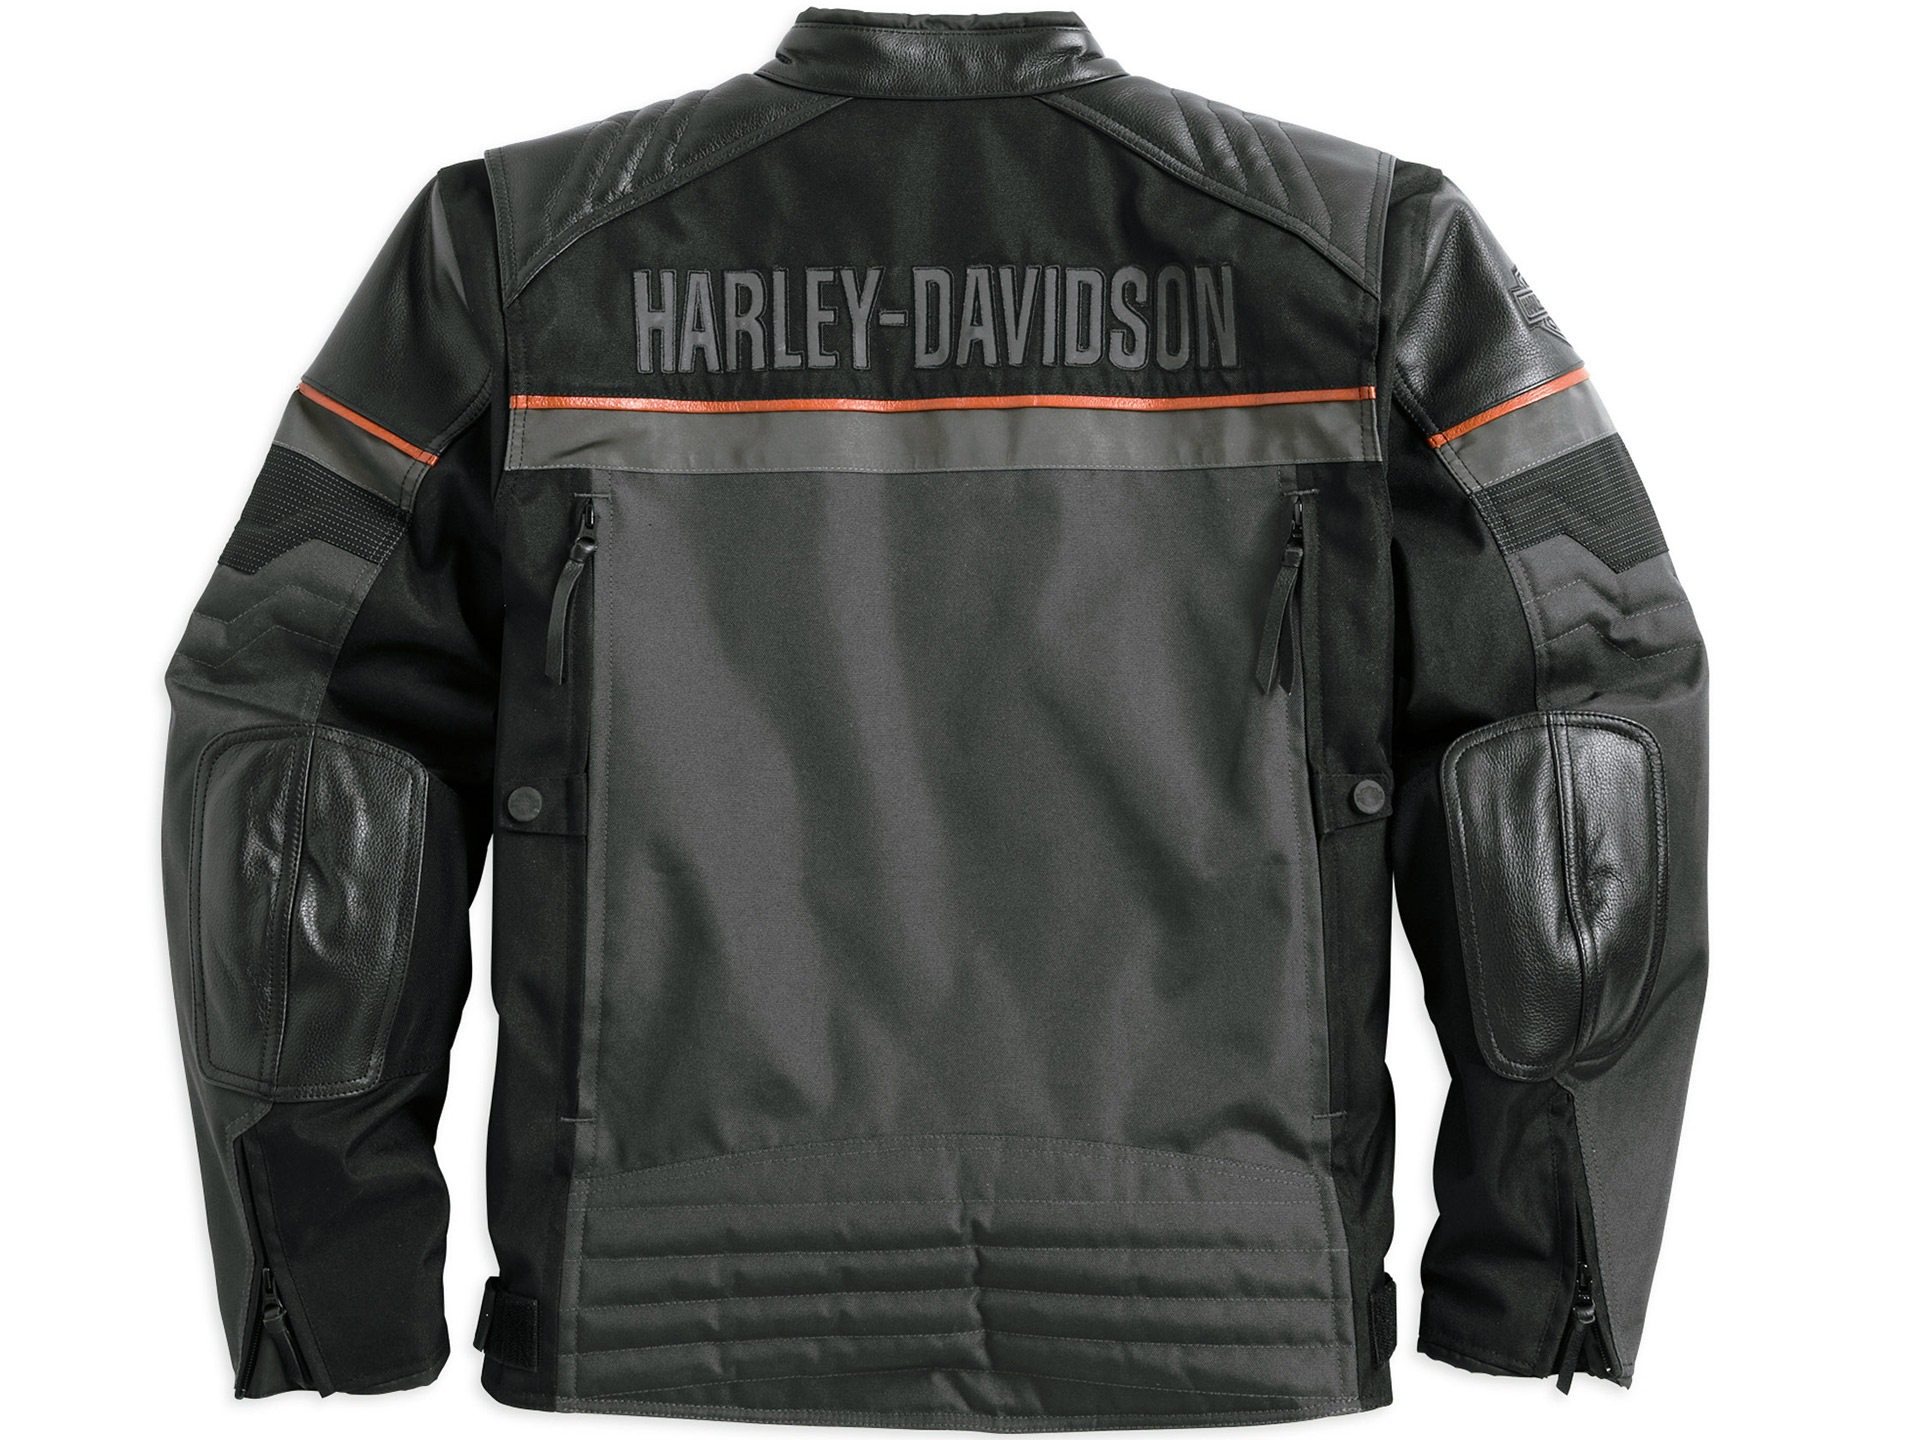 98539 14vm harley davidson jacke innovator im thunderbike shop. Black Bedroom Furniture Sets. Home Design Ideas